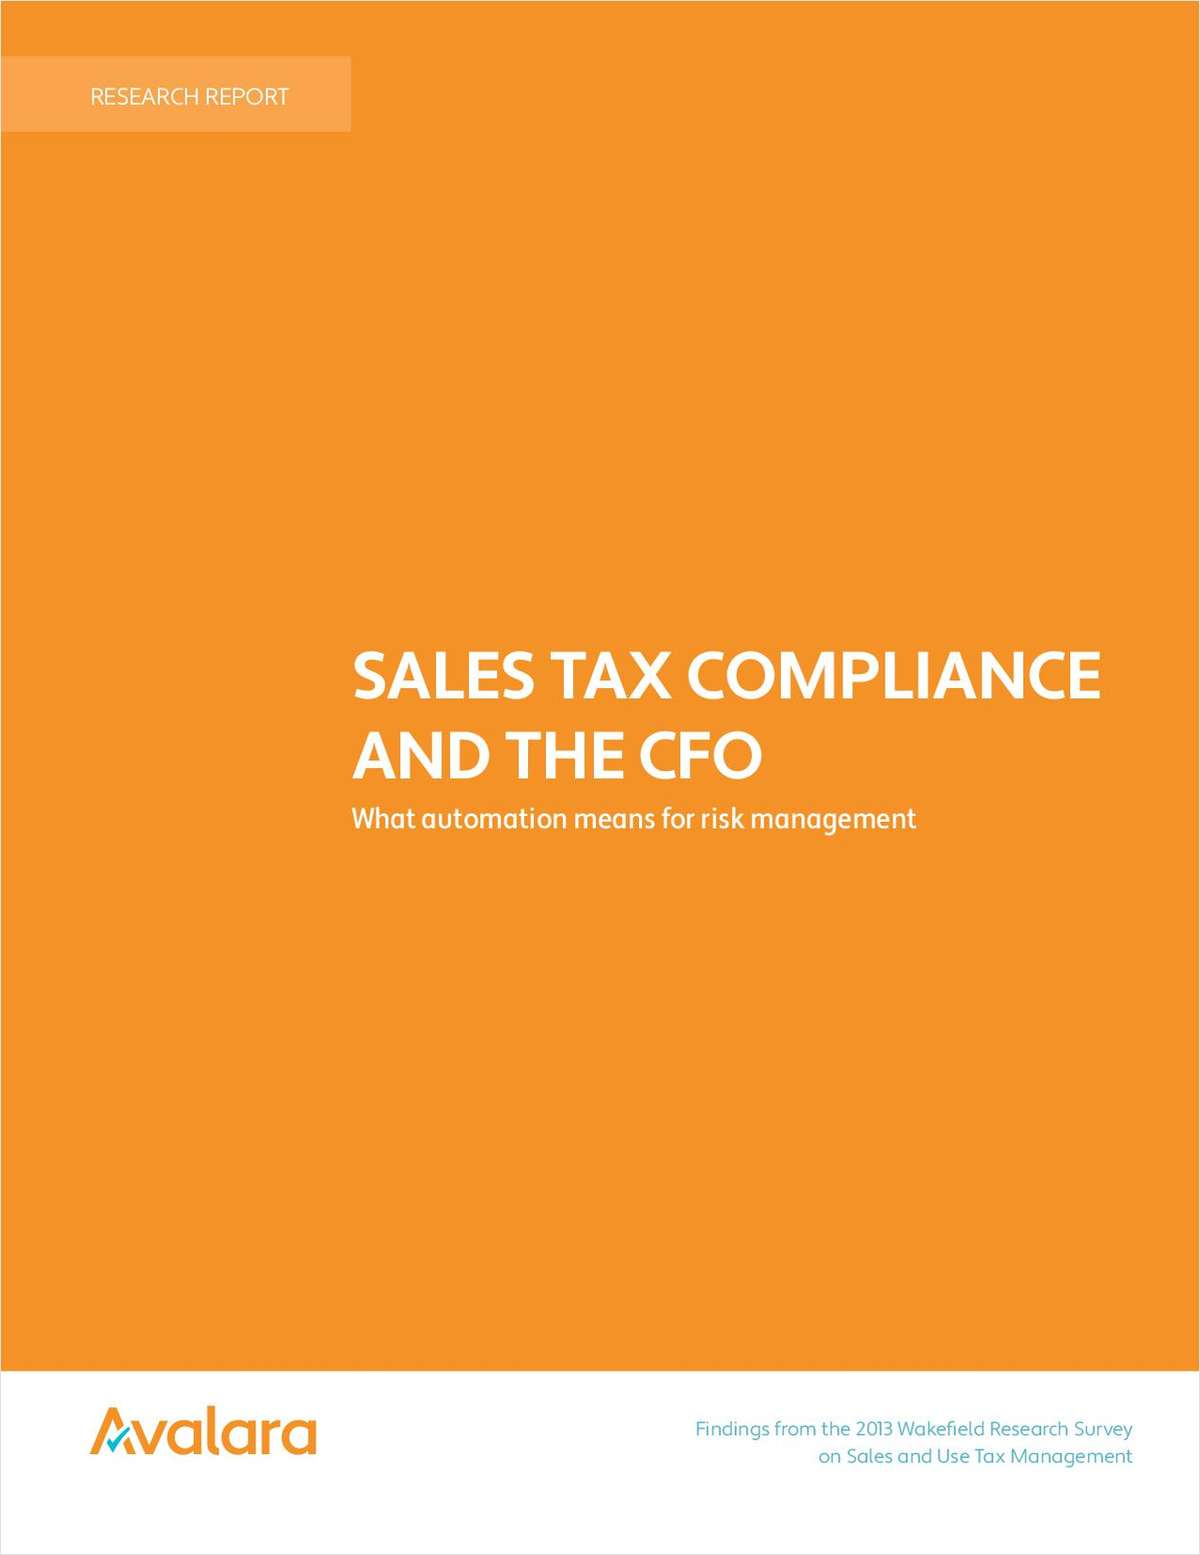 Sales Tax Compliance And The CFO:  What Automation Means For Risk Management